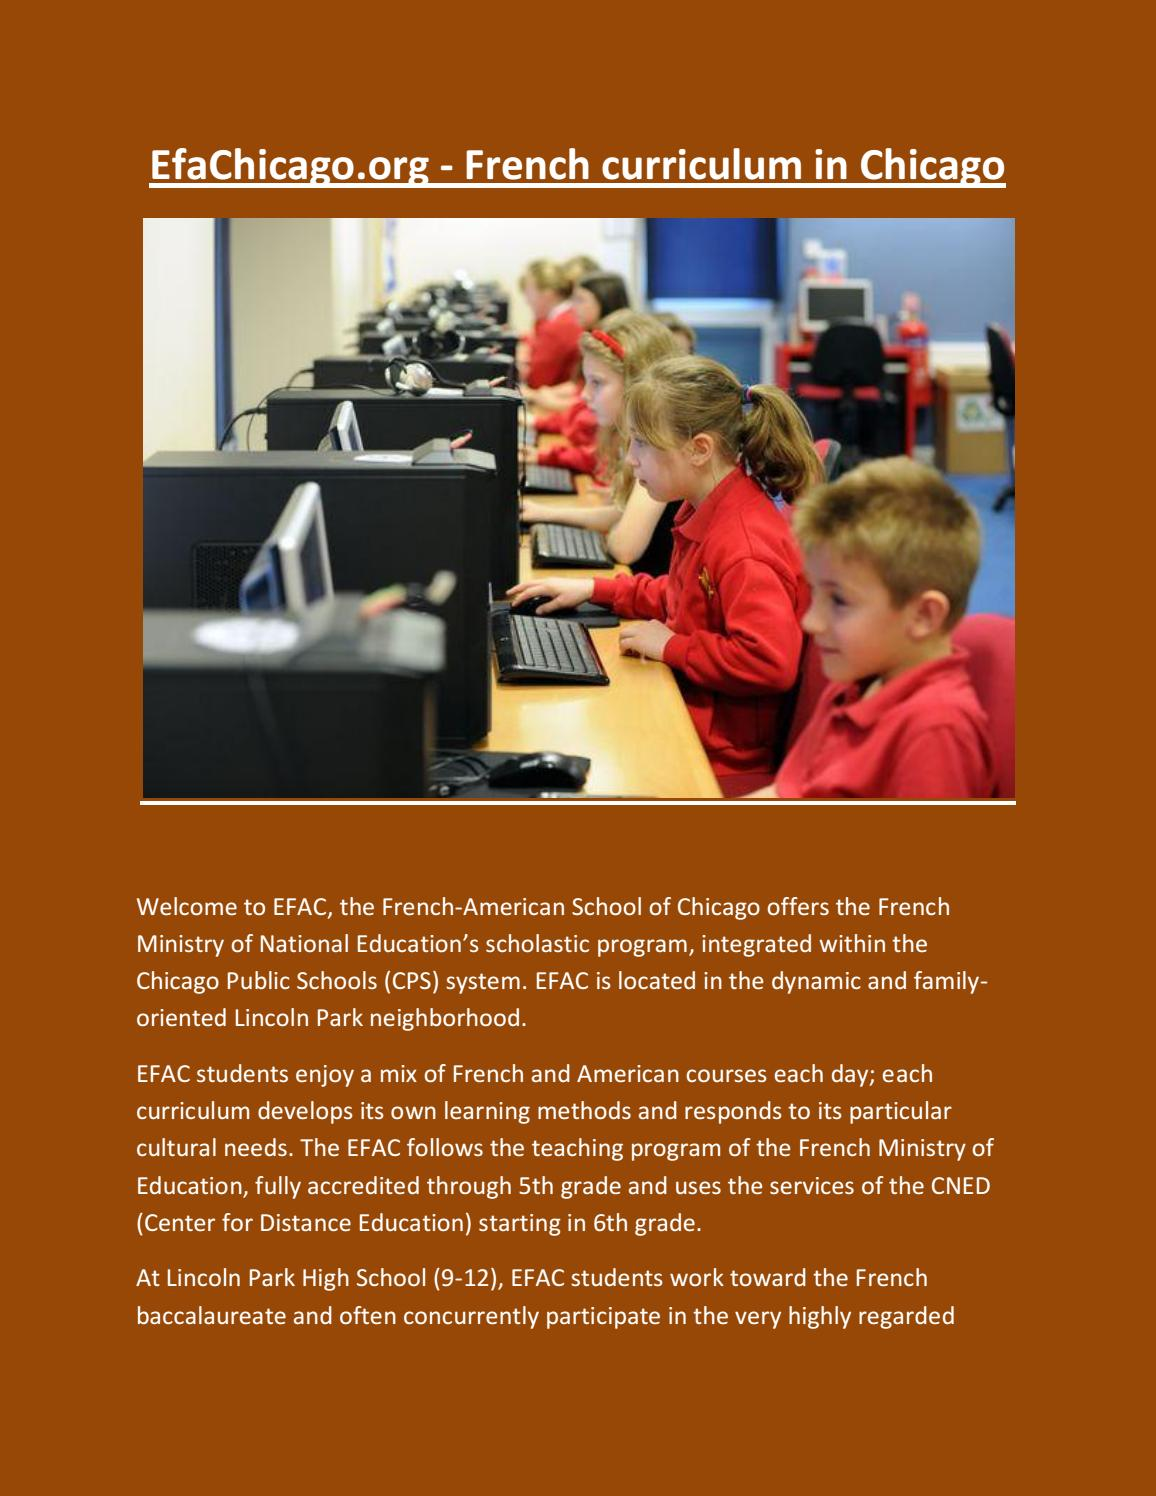 French Curriculum In Chicago By Efachicago Issuu